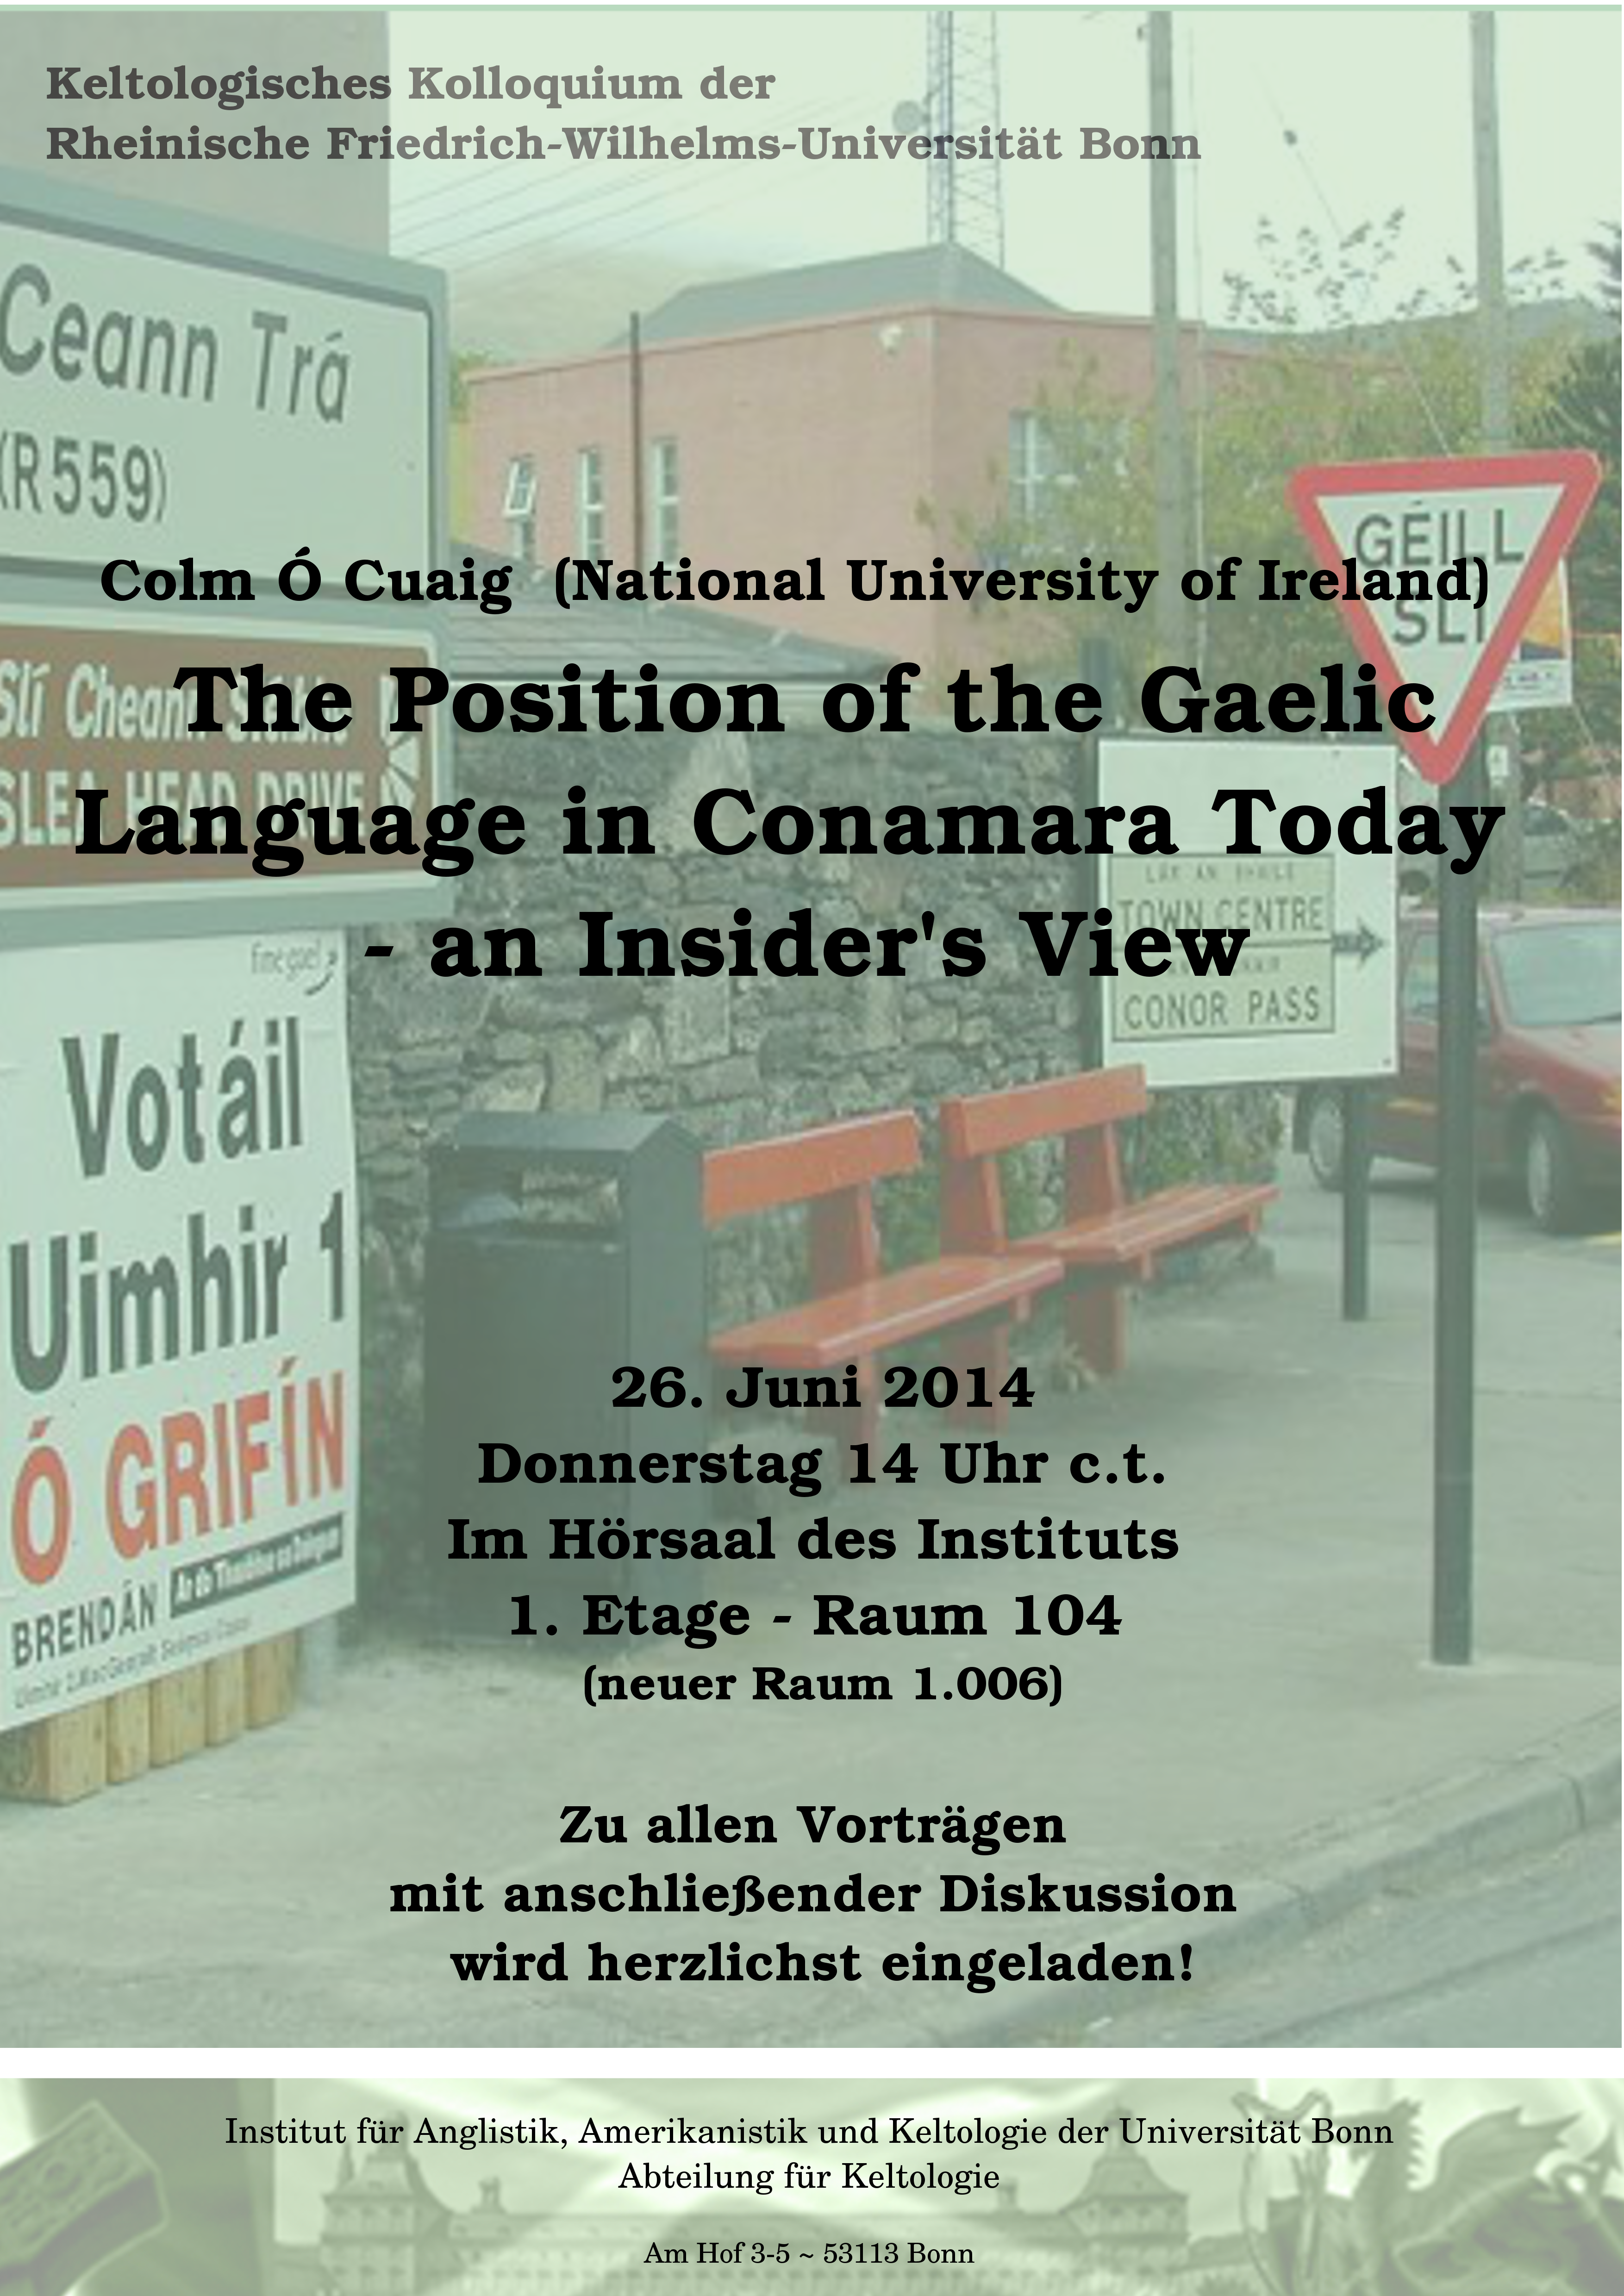 Colm Ó Cuaig: The Position of the Gaelic Language in Conamara Today -- an Insider's View